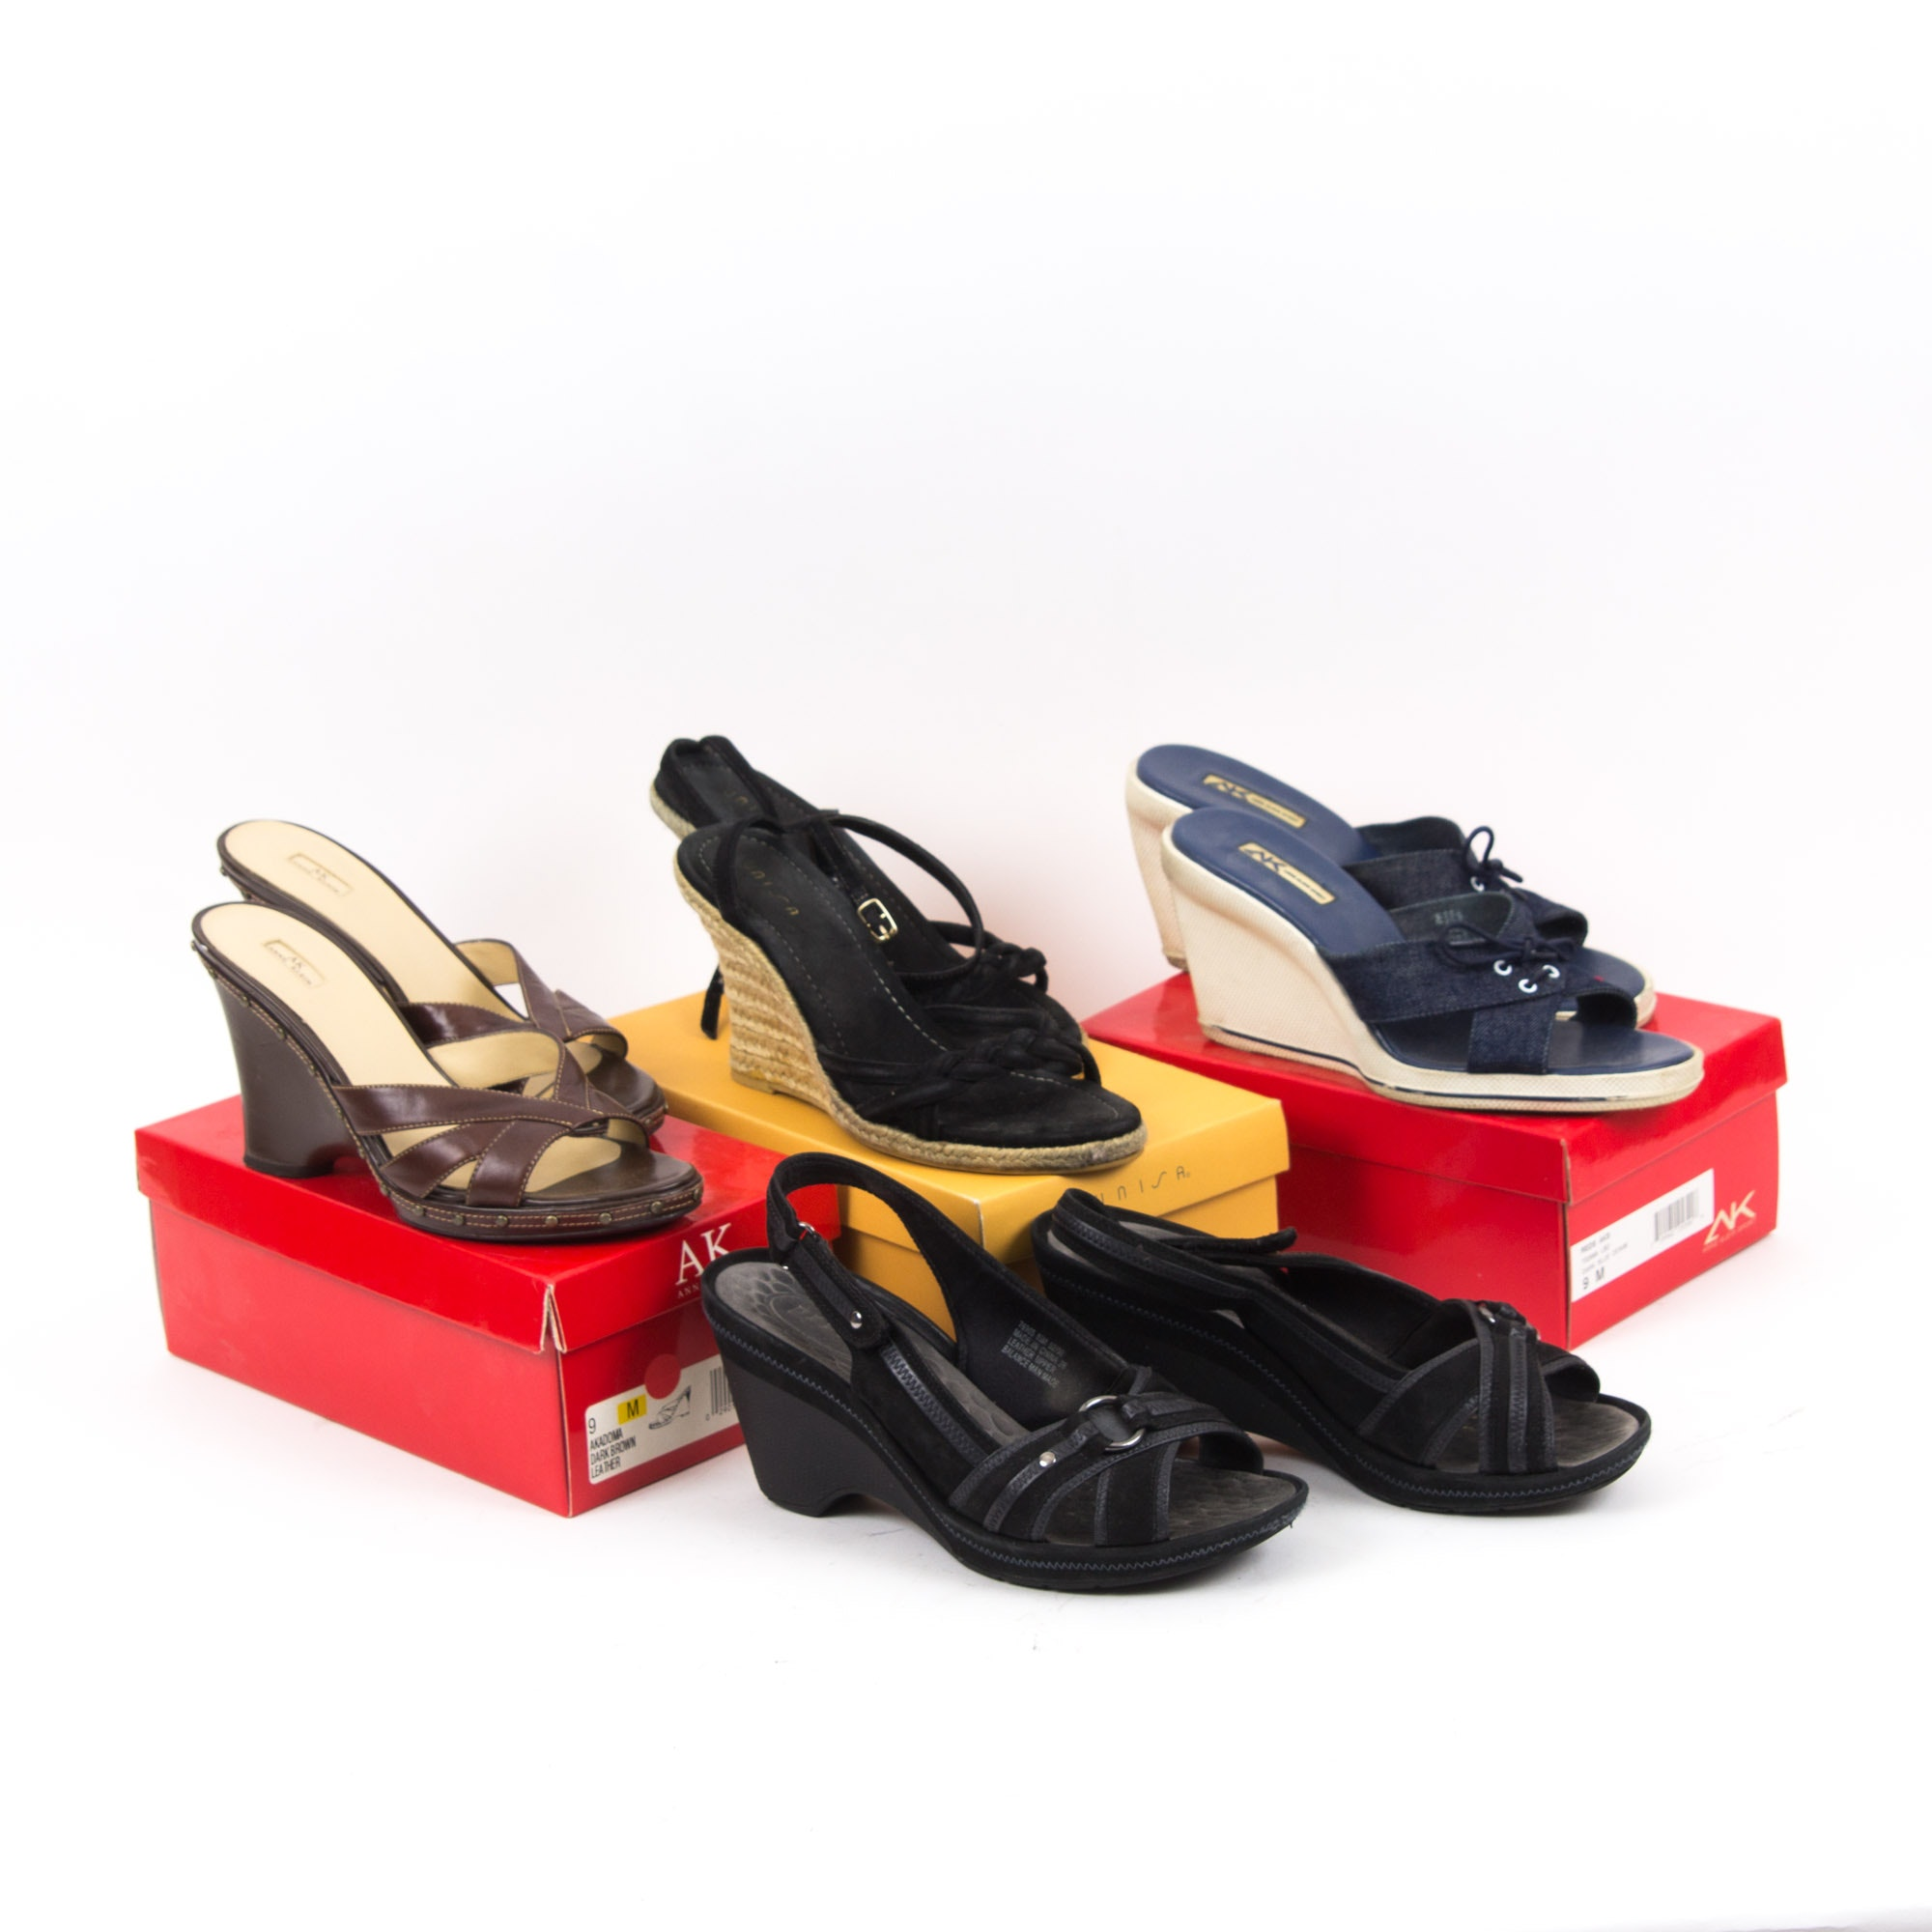 Four Pairs of Women's Wedges Including Unisa, Anne Klein, and Clarks